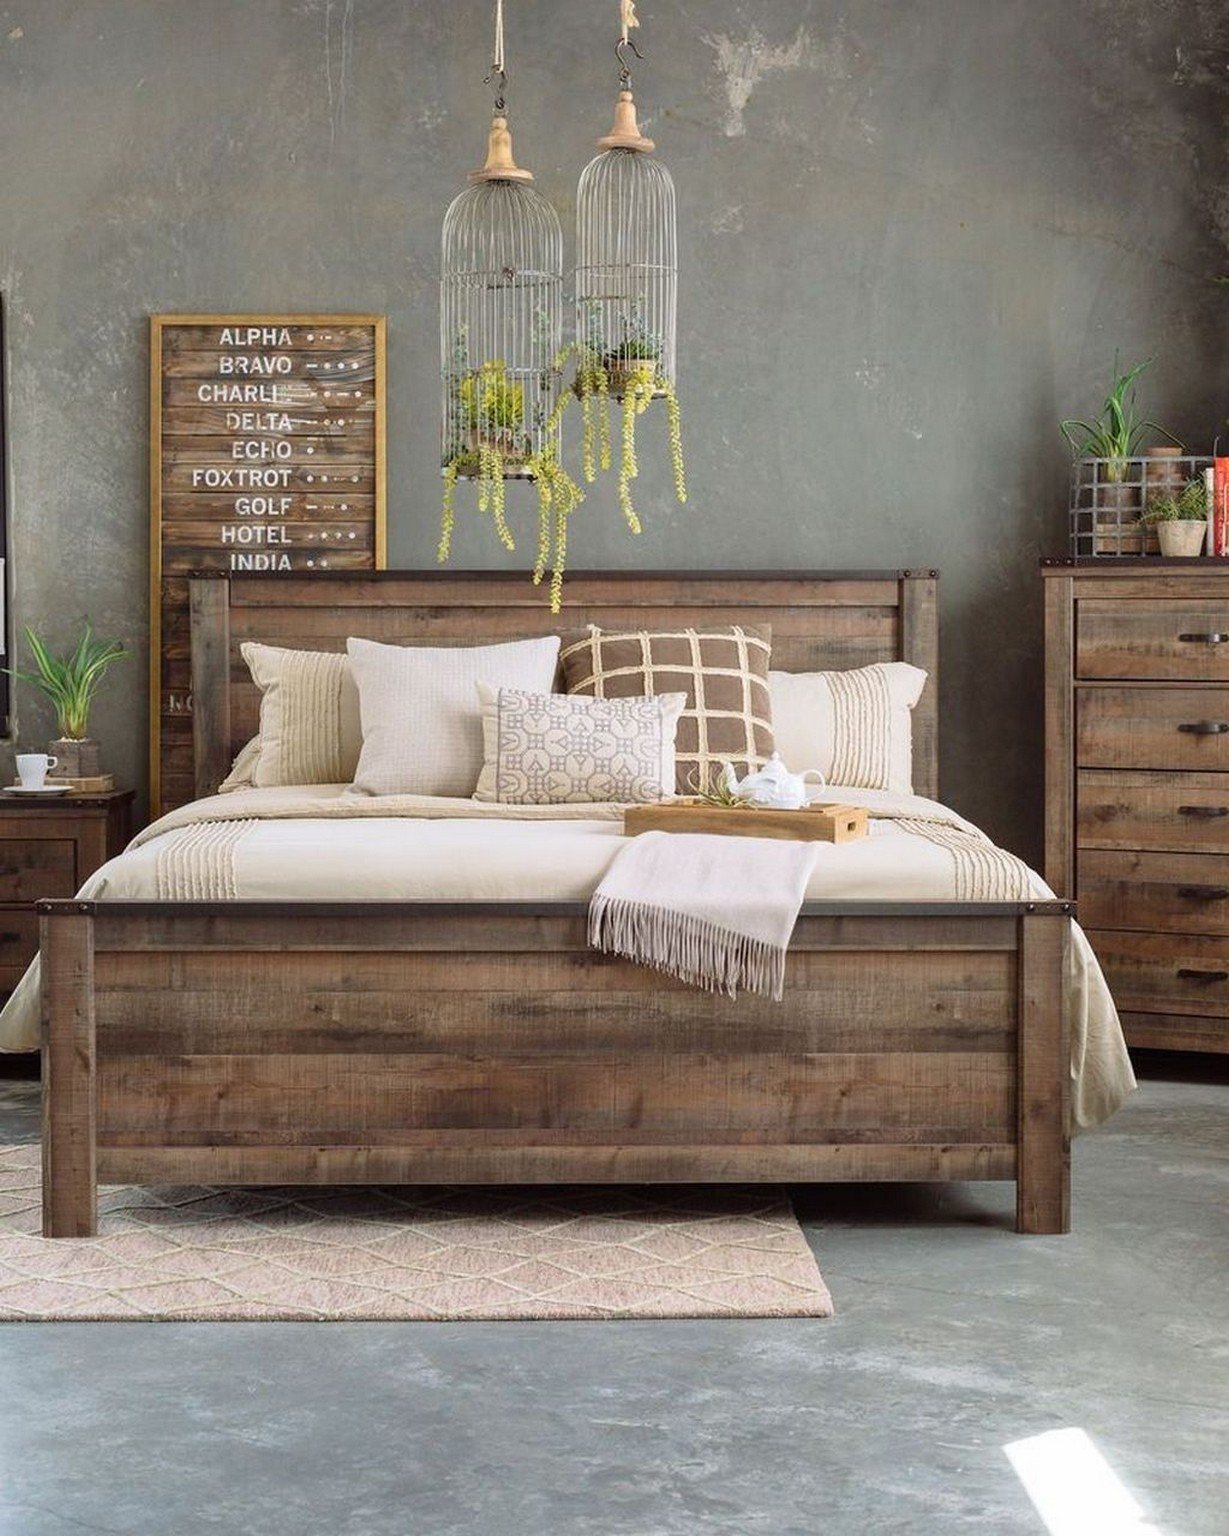 64 Rustic Bedroom Furniture How to Look Elegance Home Decor 25